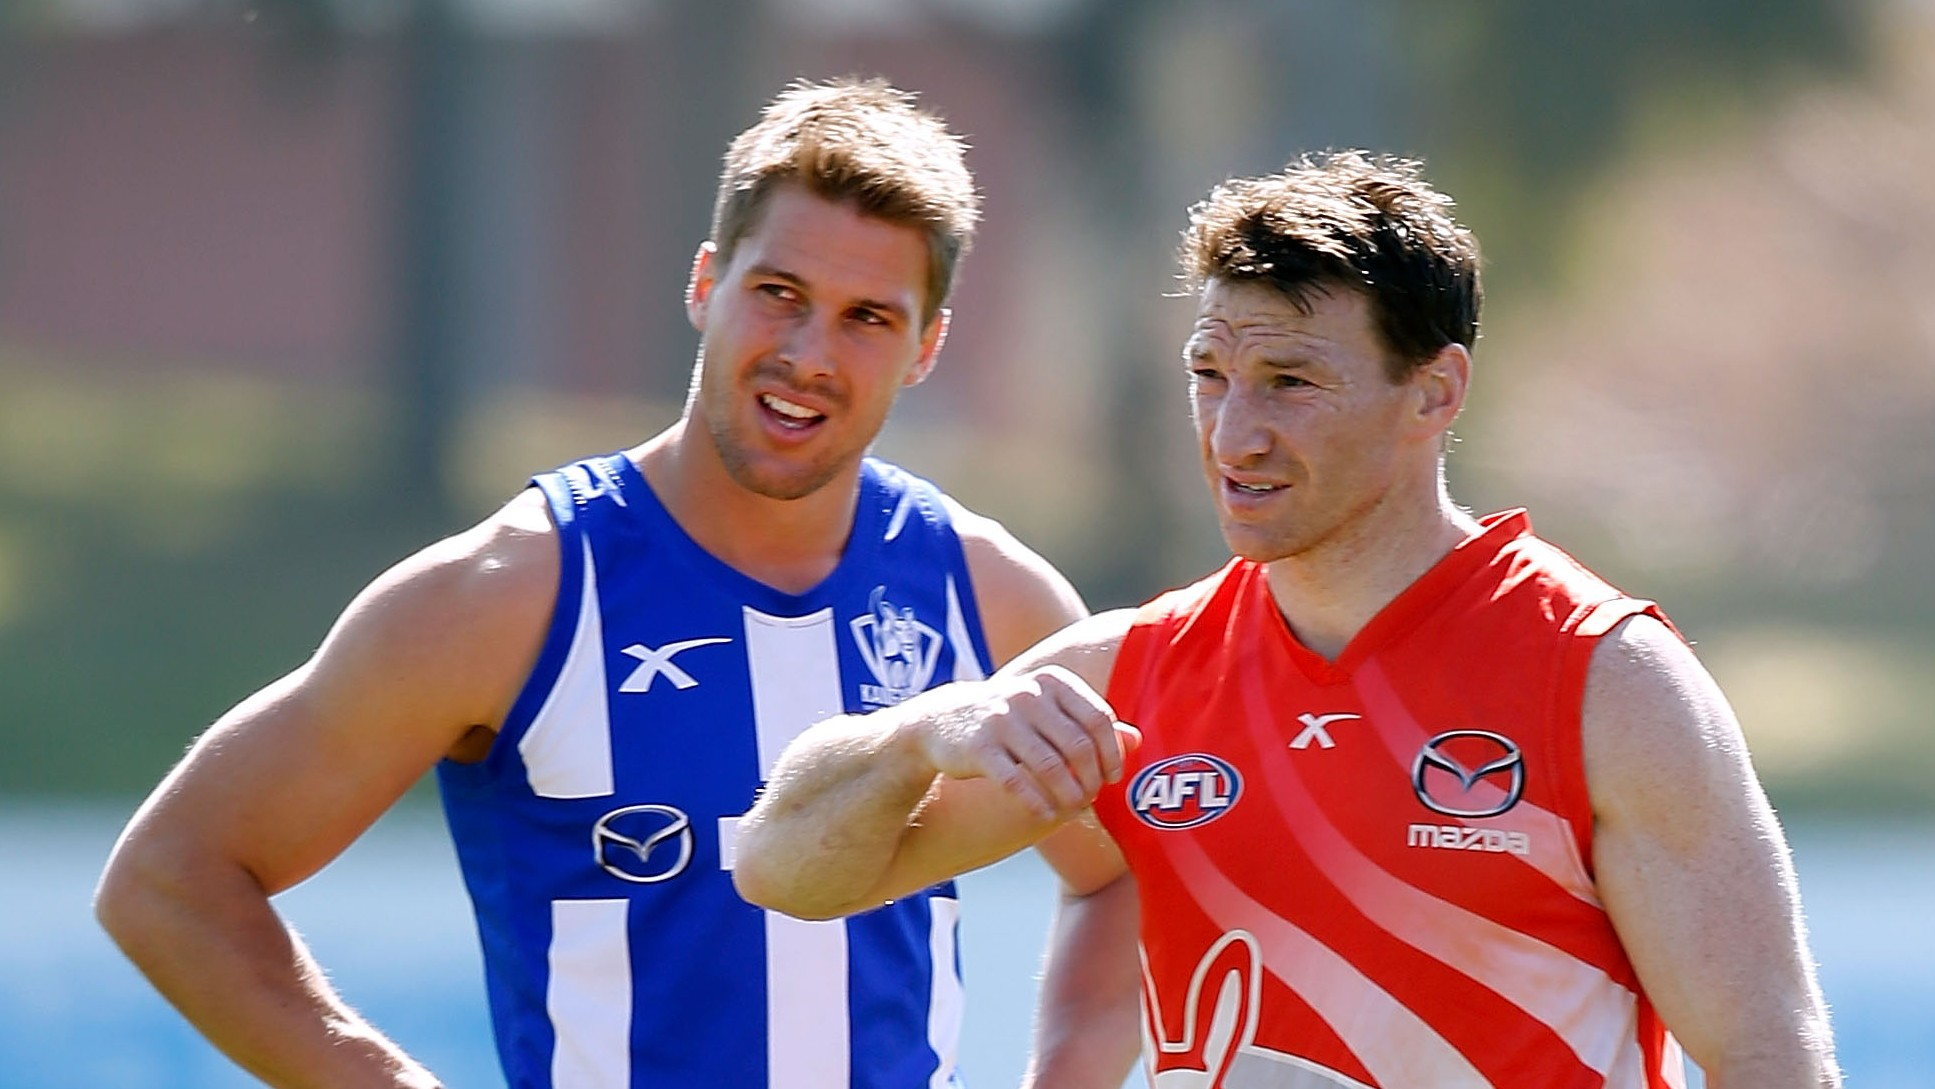 AFL 2014 Training - North Melbourne 050914